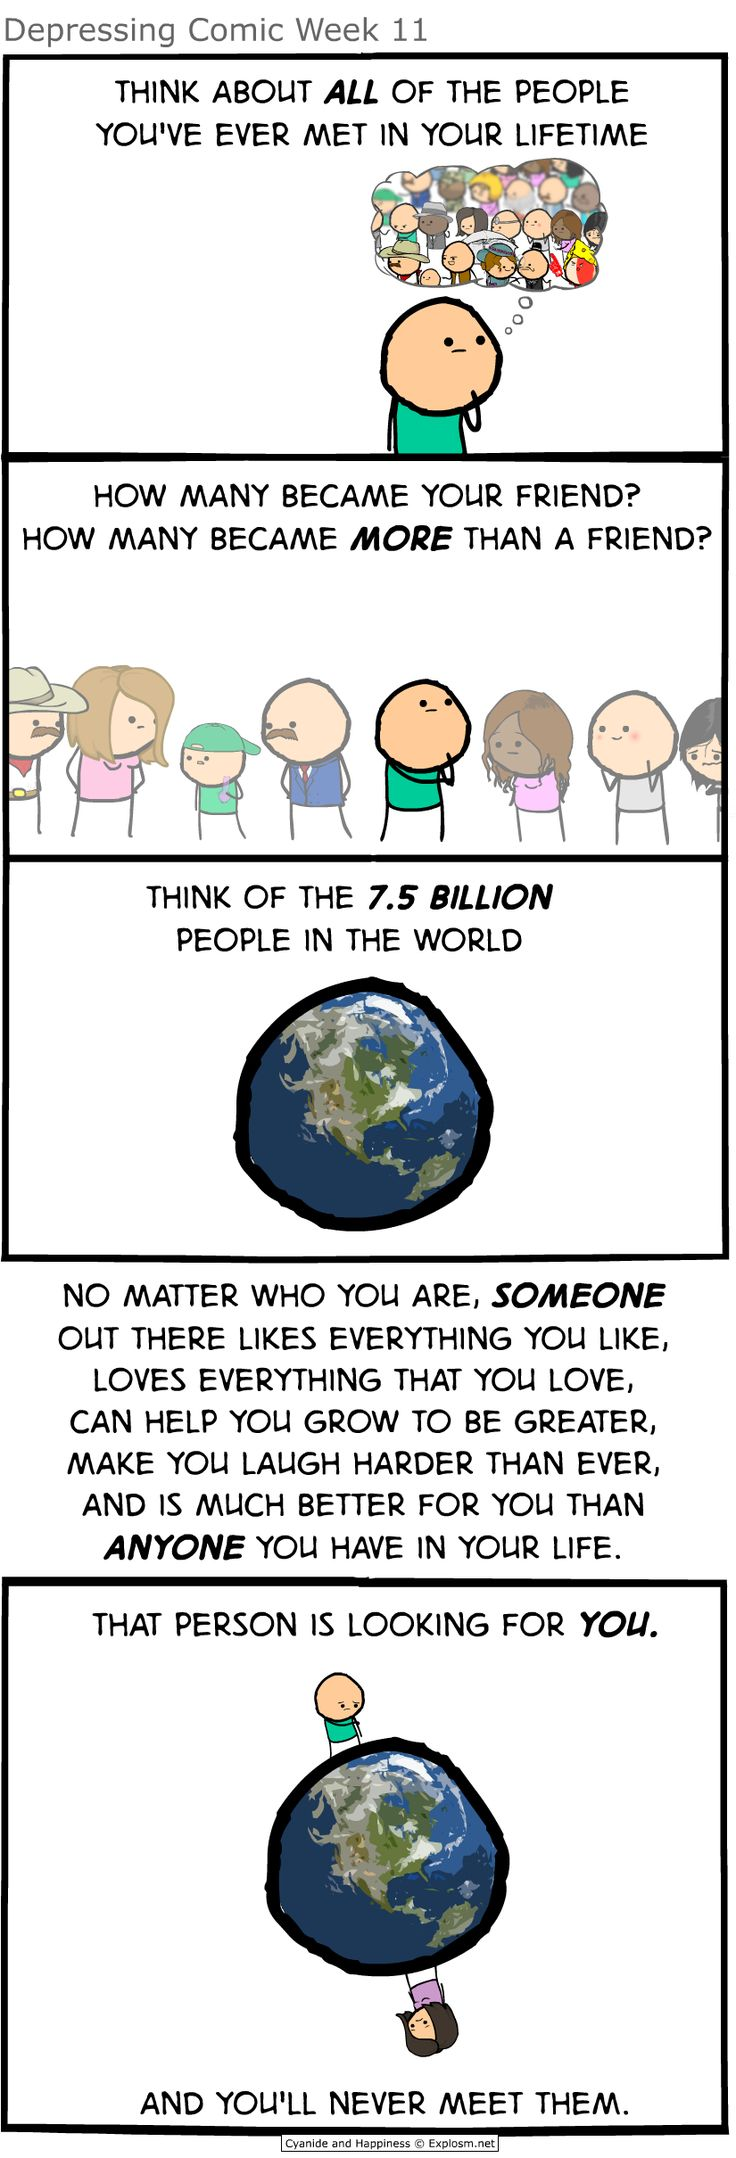 Depressing Comic Week 11 - Cyanide & Happiness (Explosm.net)